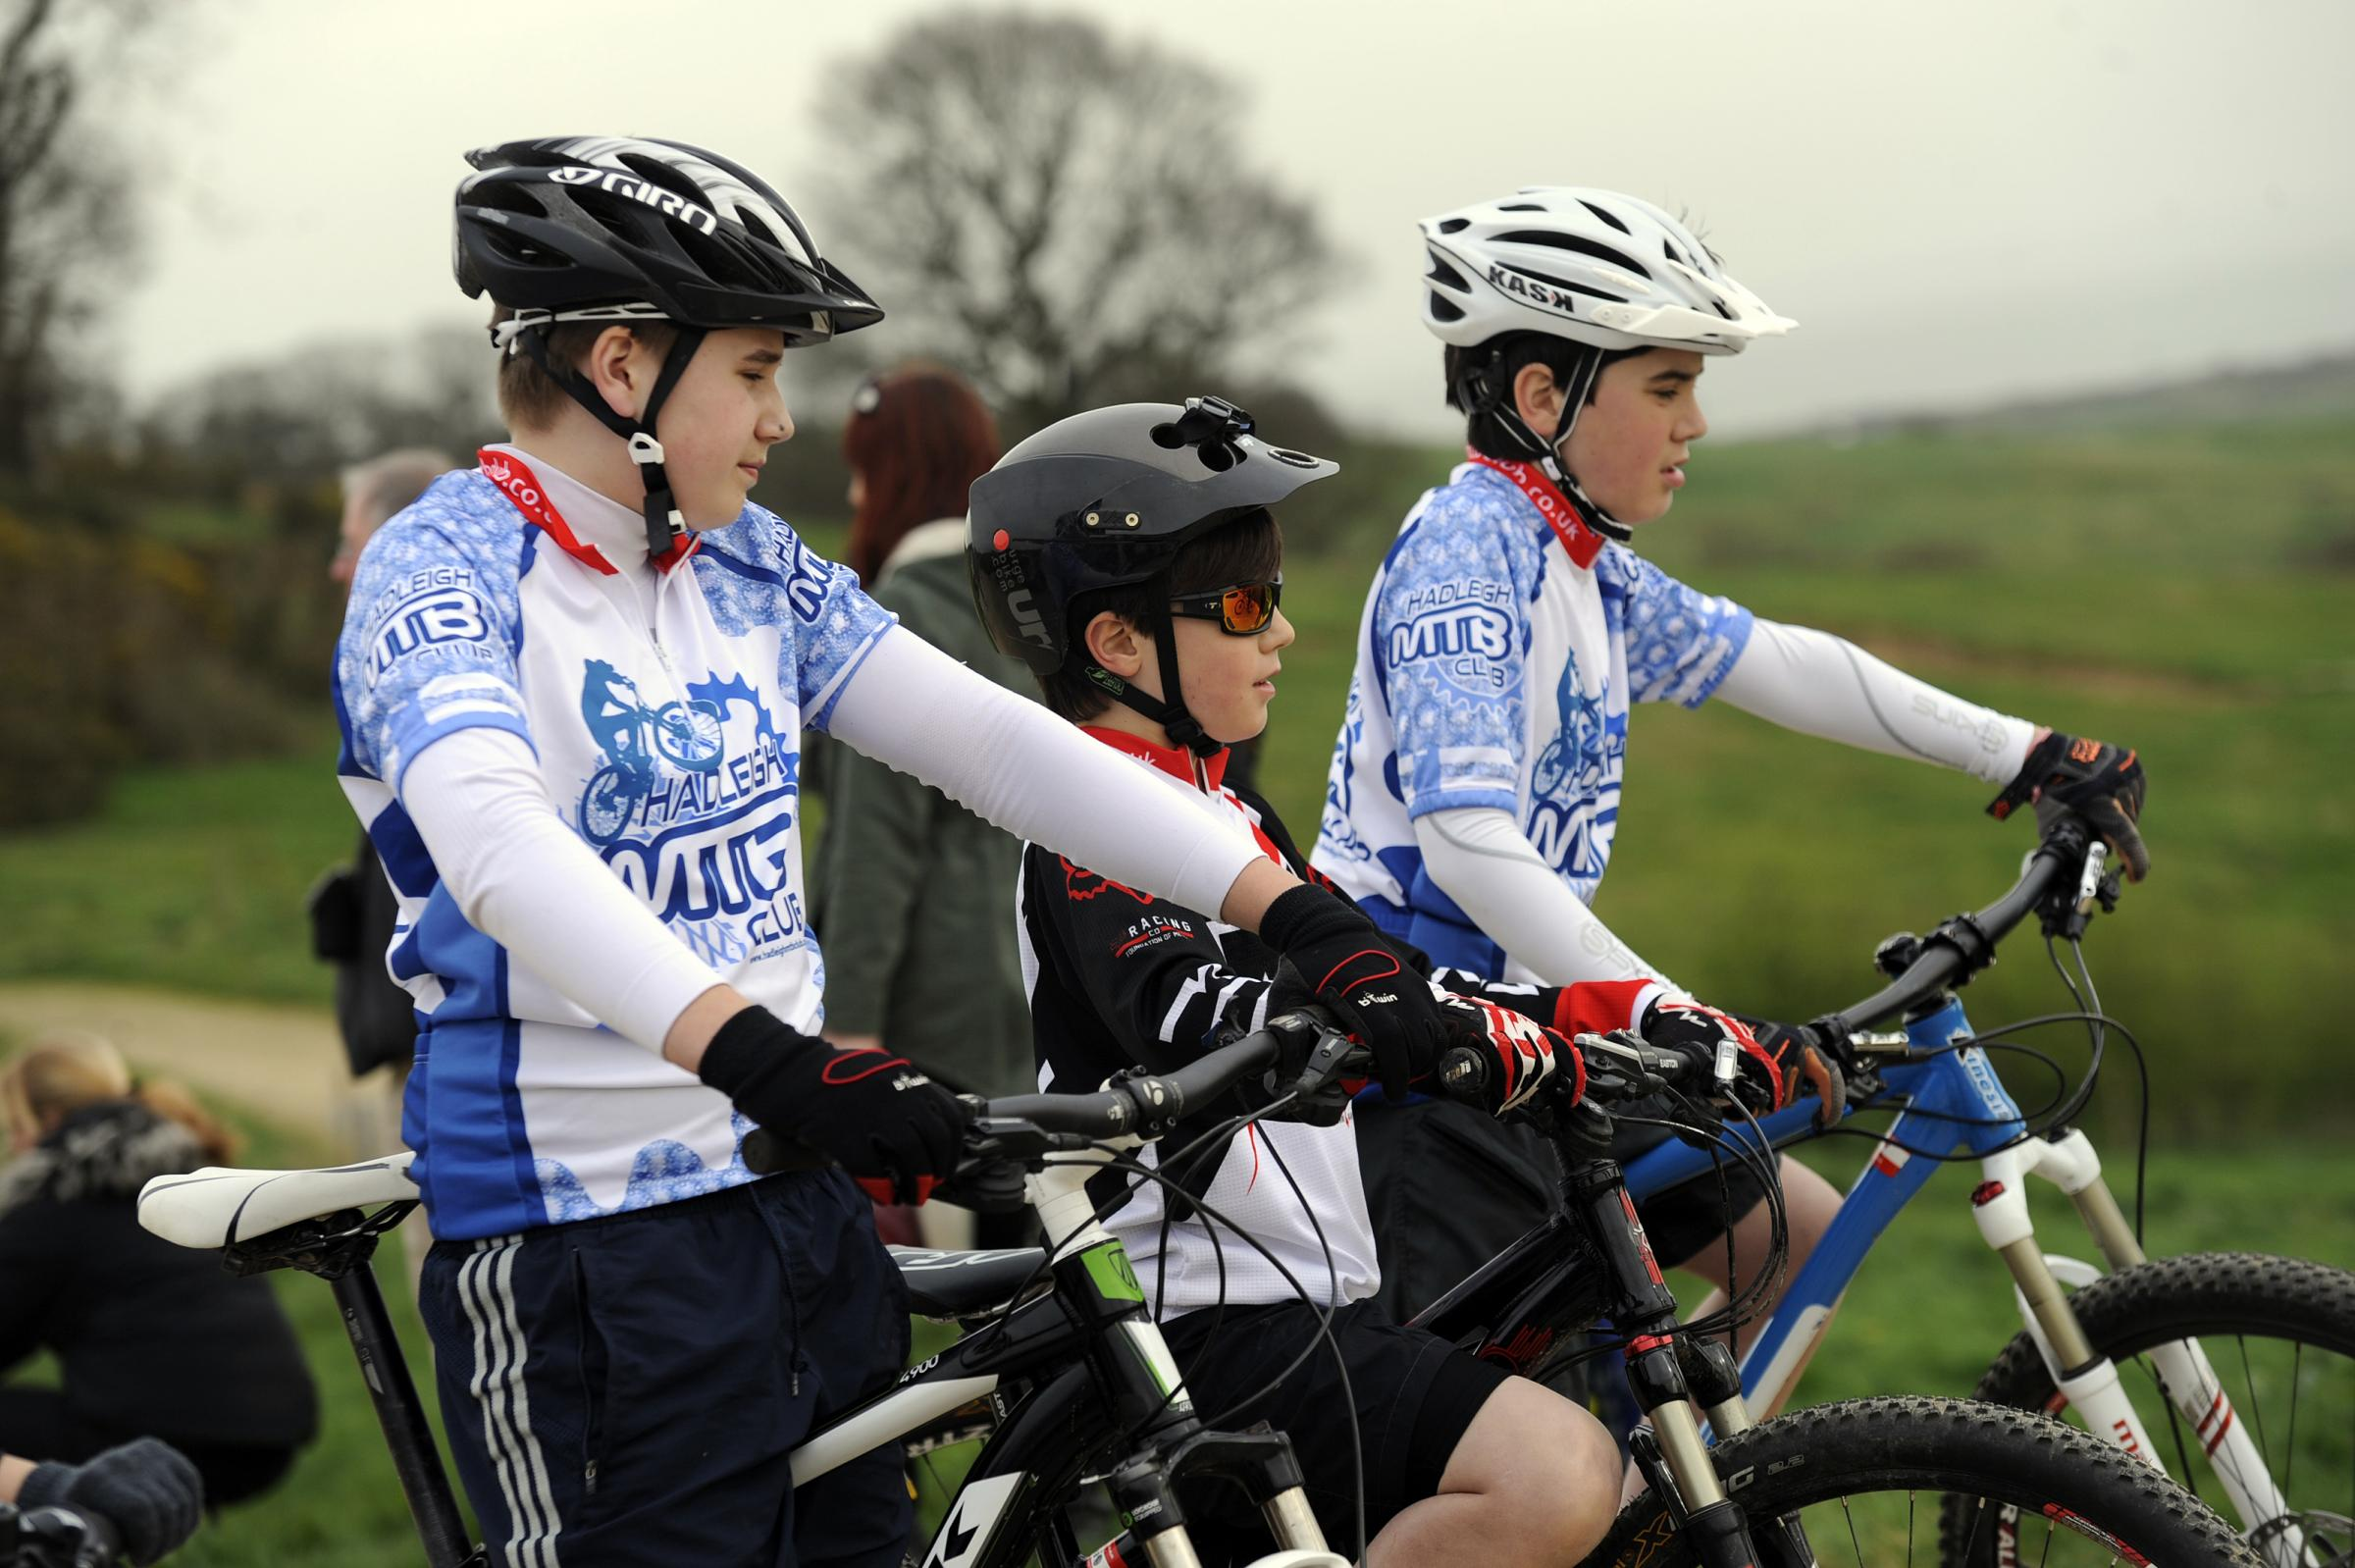 Wheel deal – young cyclists got the chance to train with profesional mountain bikers